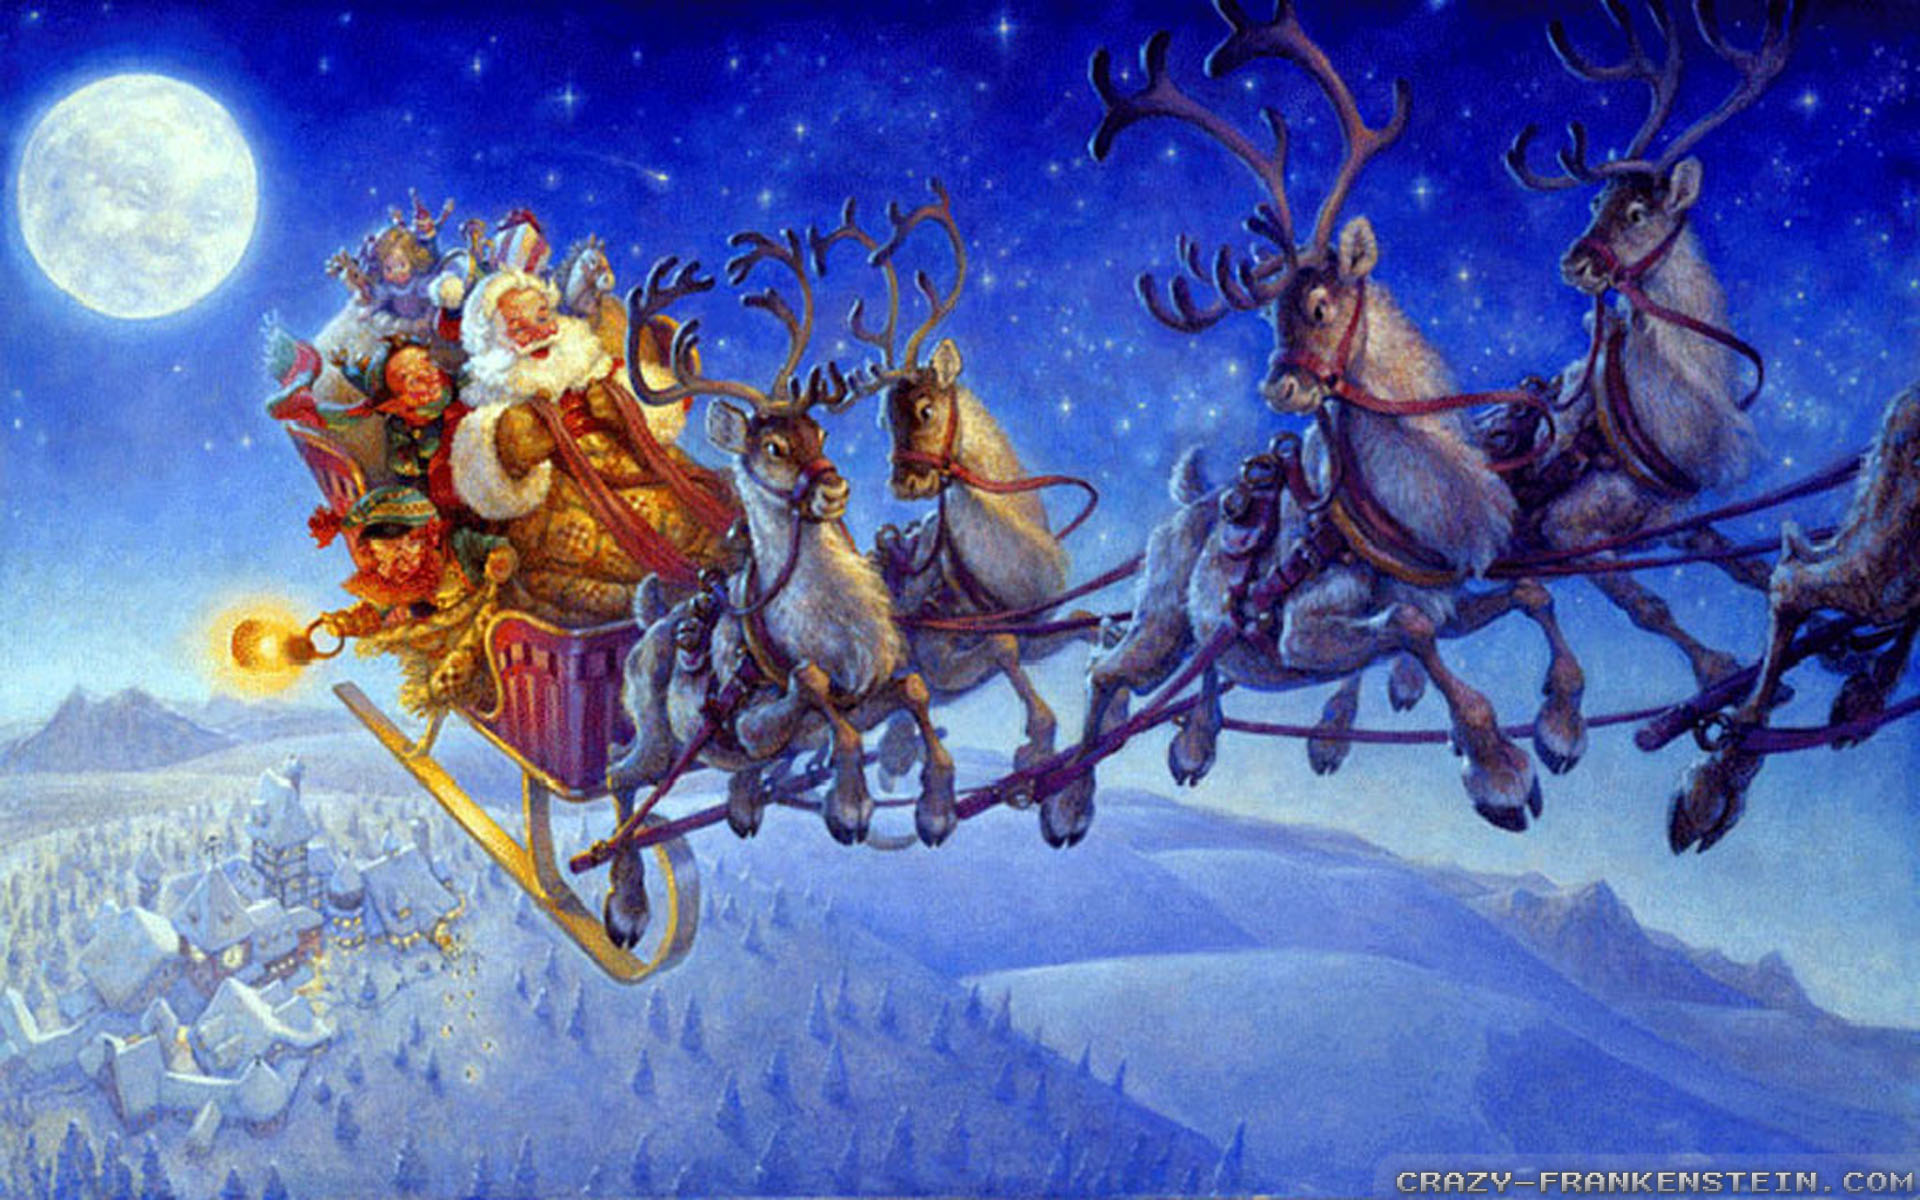 Wallpaper: Santa on Christmas eve wallpapers. Resolution: 1024x768 | 1280x1024 | 1600x1200. Widescreen Res: 1440x900 | 1680x1050 | 1920x1200